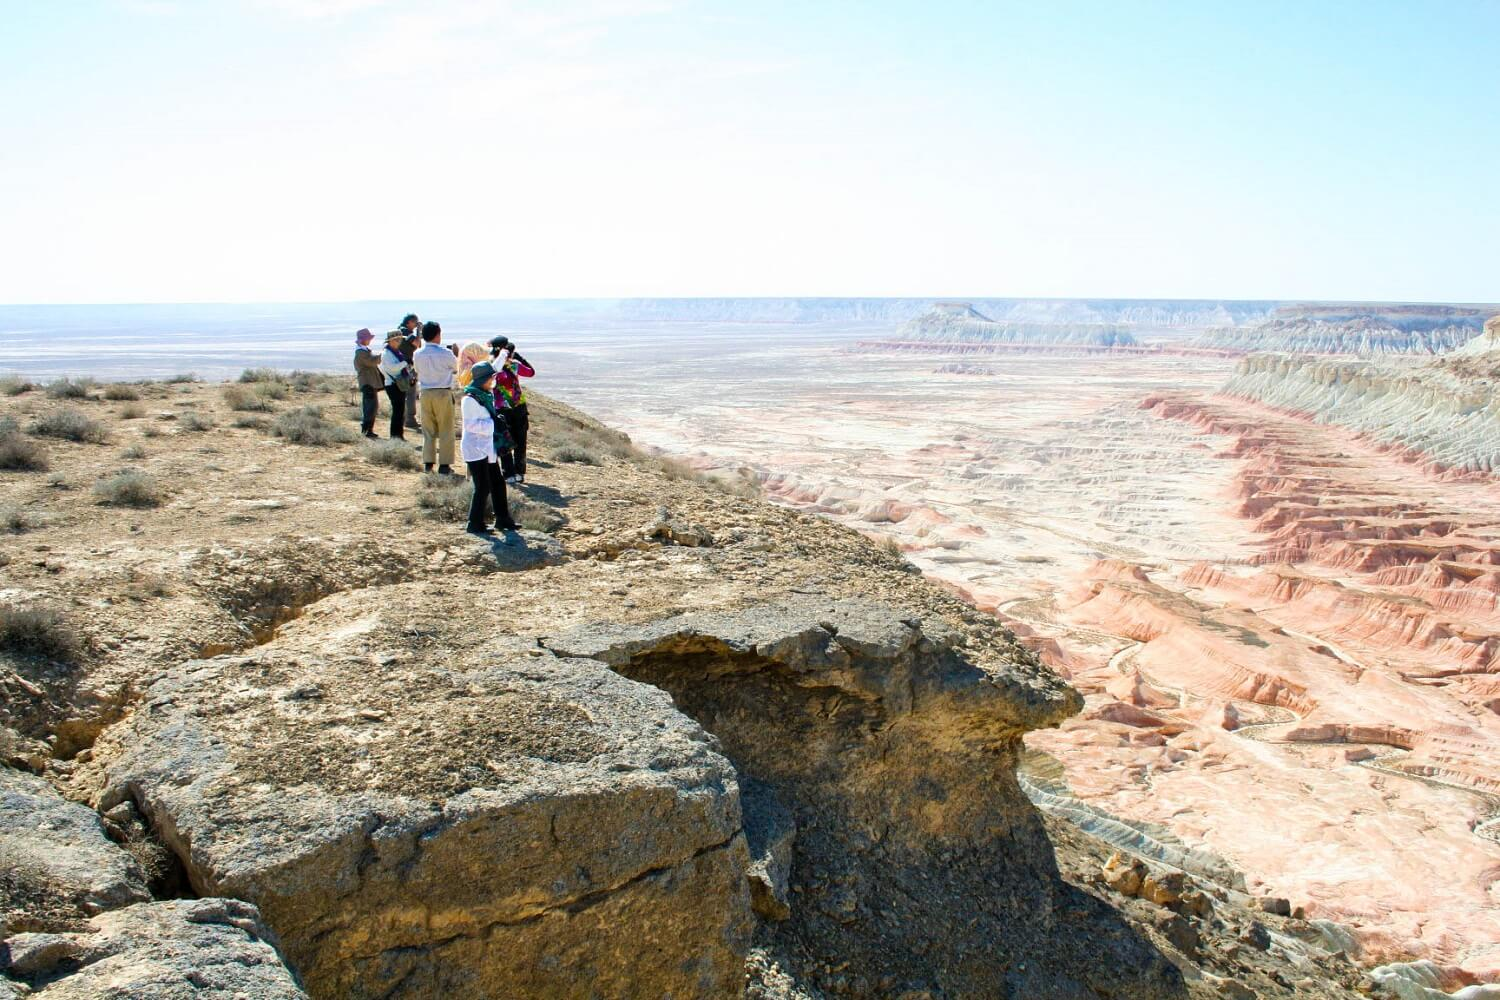 Turkmenistan Tour - Yangykala Canyon View